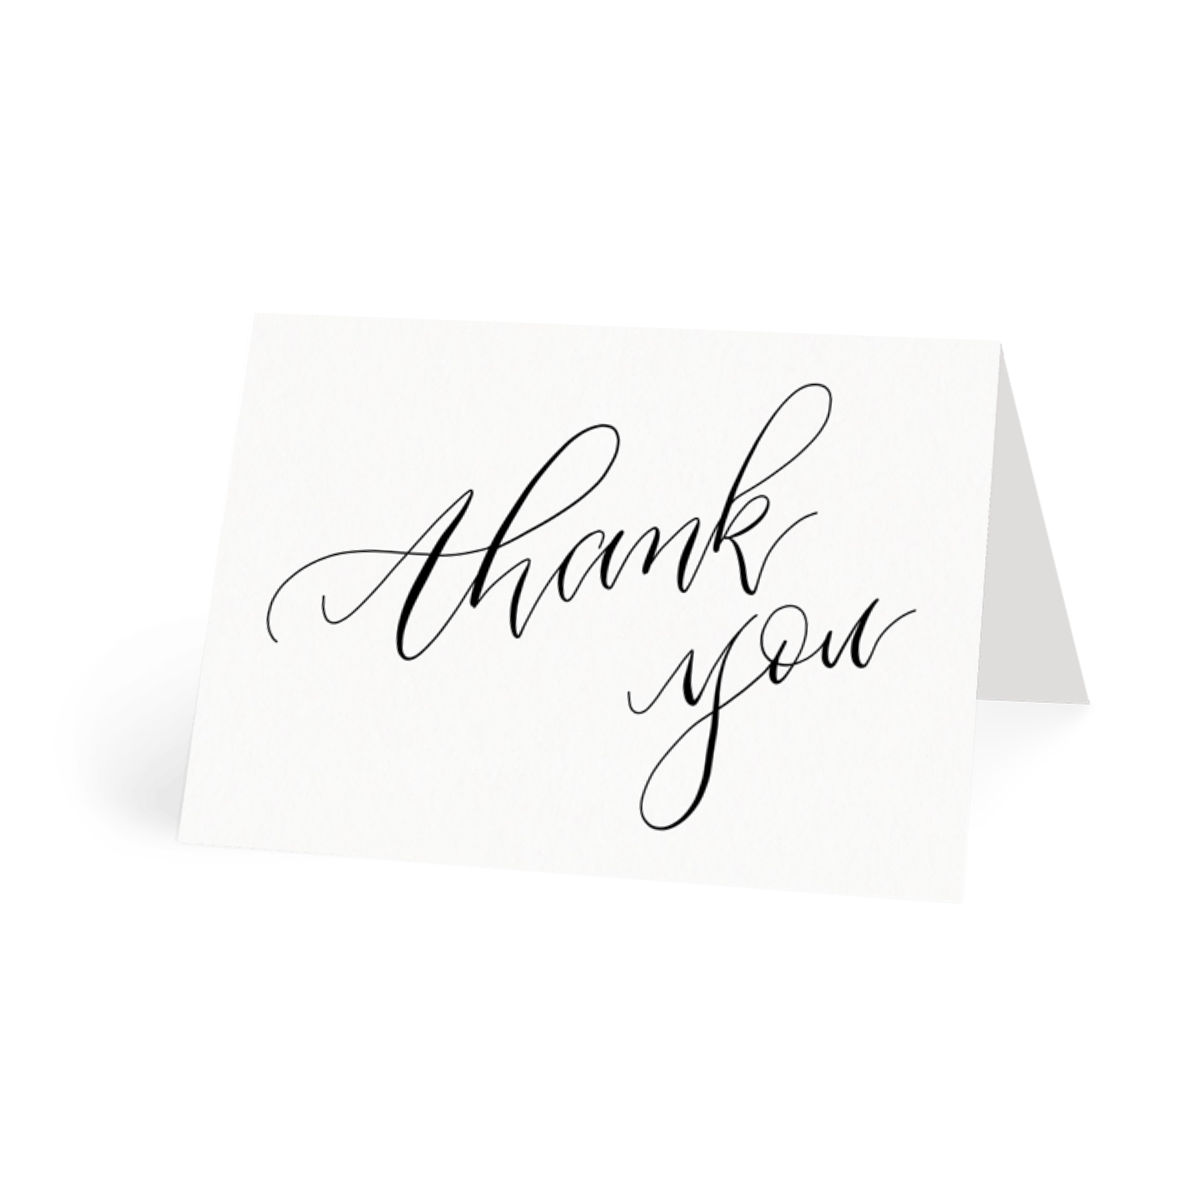 Https%3a%2f%2fwww.papier.com%2fproduct image%2f13727%2f14%2fthank you calligraphy 3524 front 1532447144.png?ixlib=rb 1.1